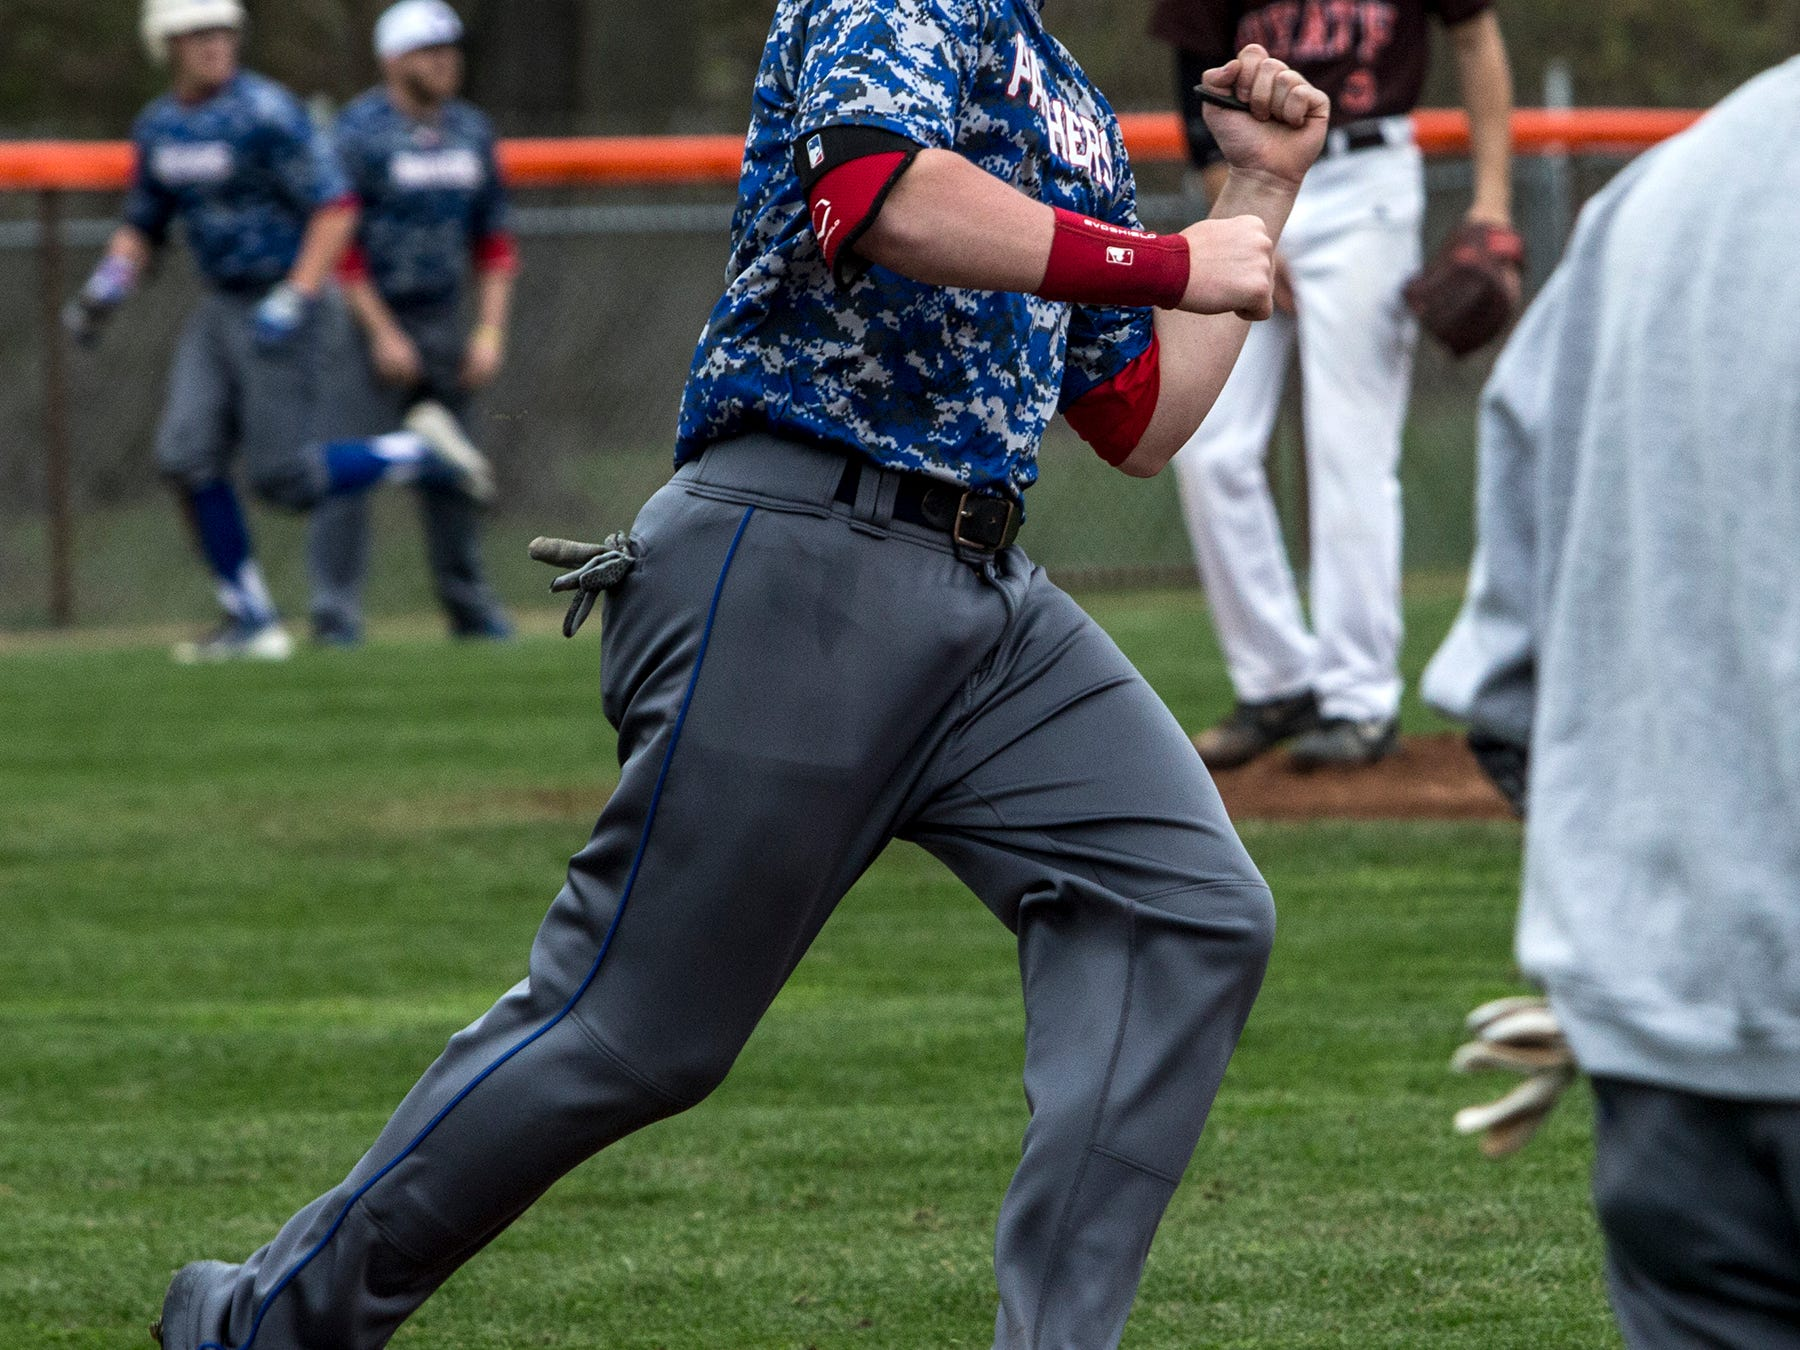 Jacob Dennis hits a three-run homer in Thursday's game against Heath. The game was suspended in the fifth inning because of rain, with the score tied 4-4.